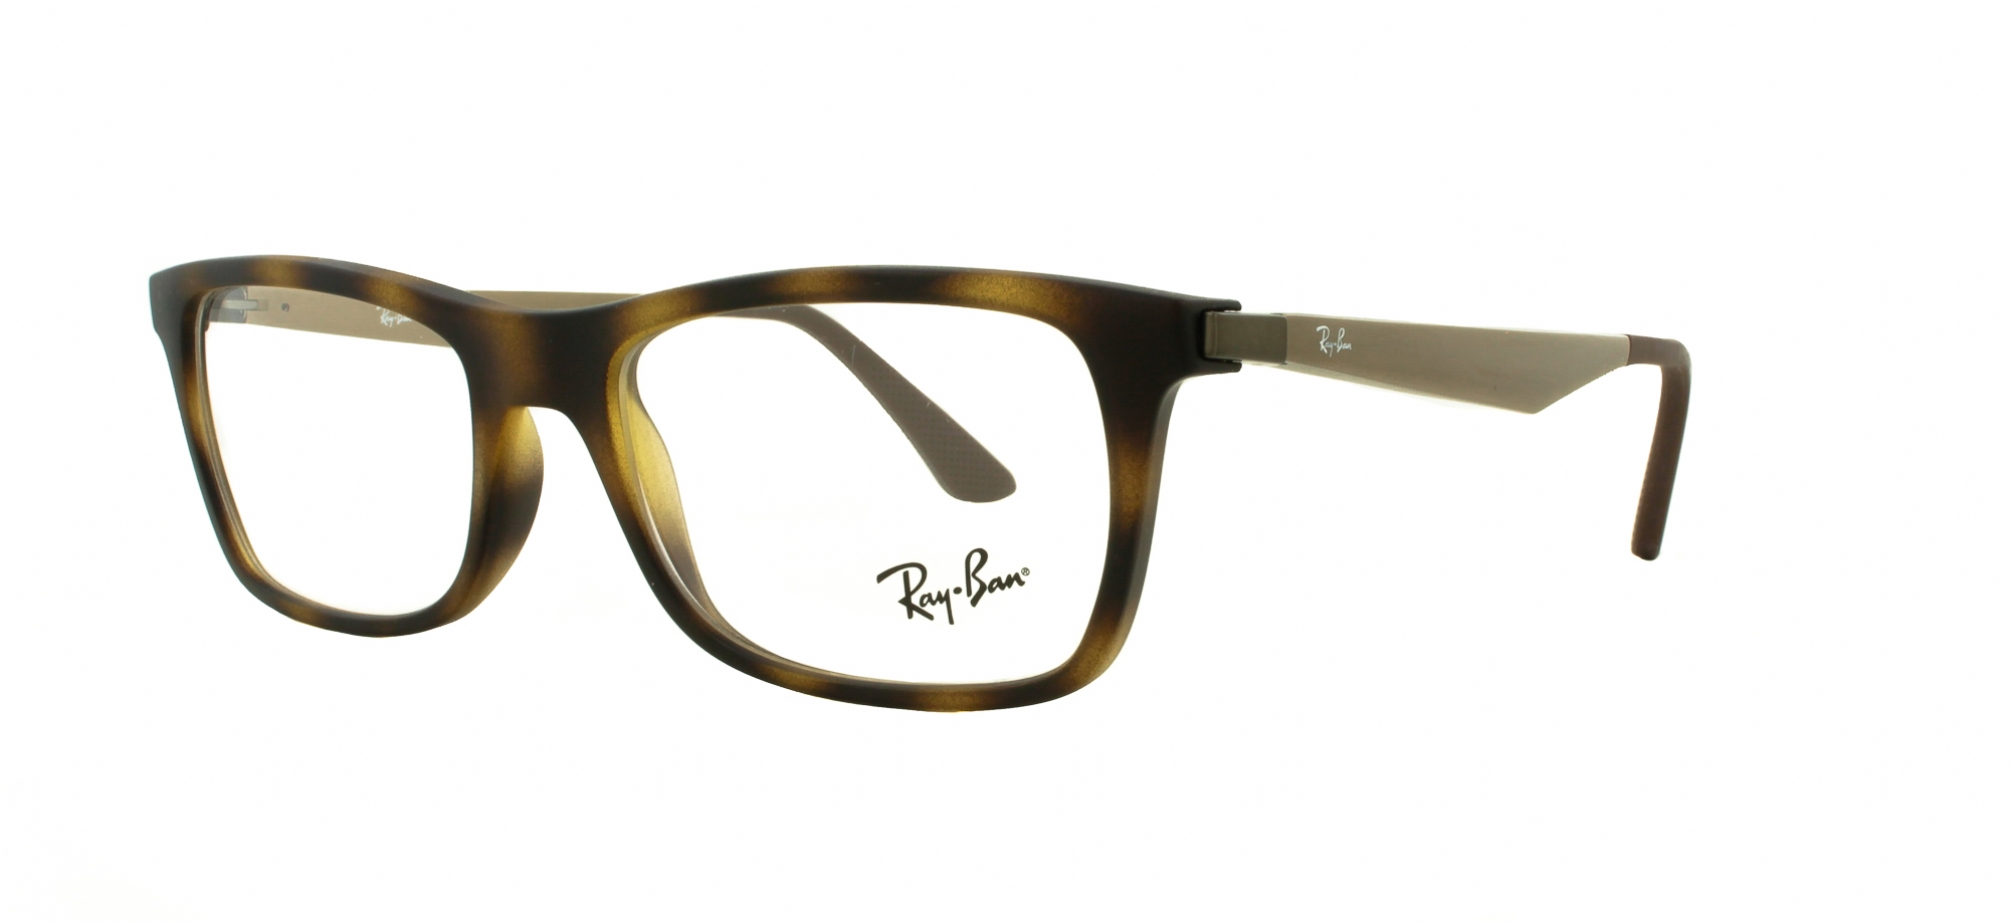 77ee1010a0 Ray Ban Rx 8588 Frames « One More Soul